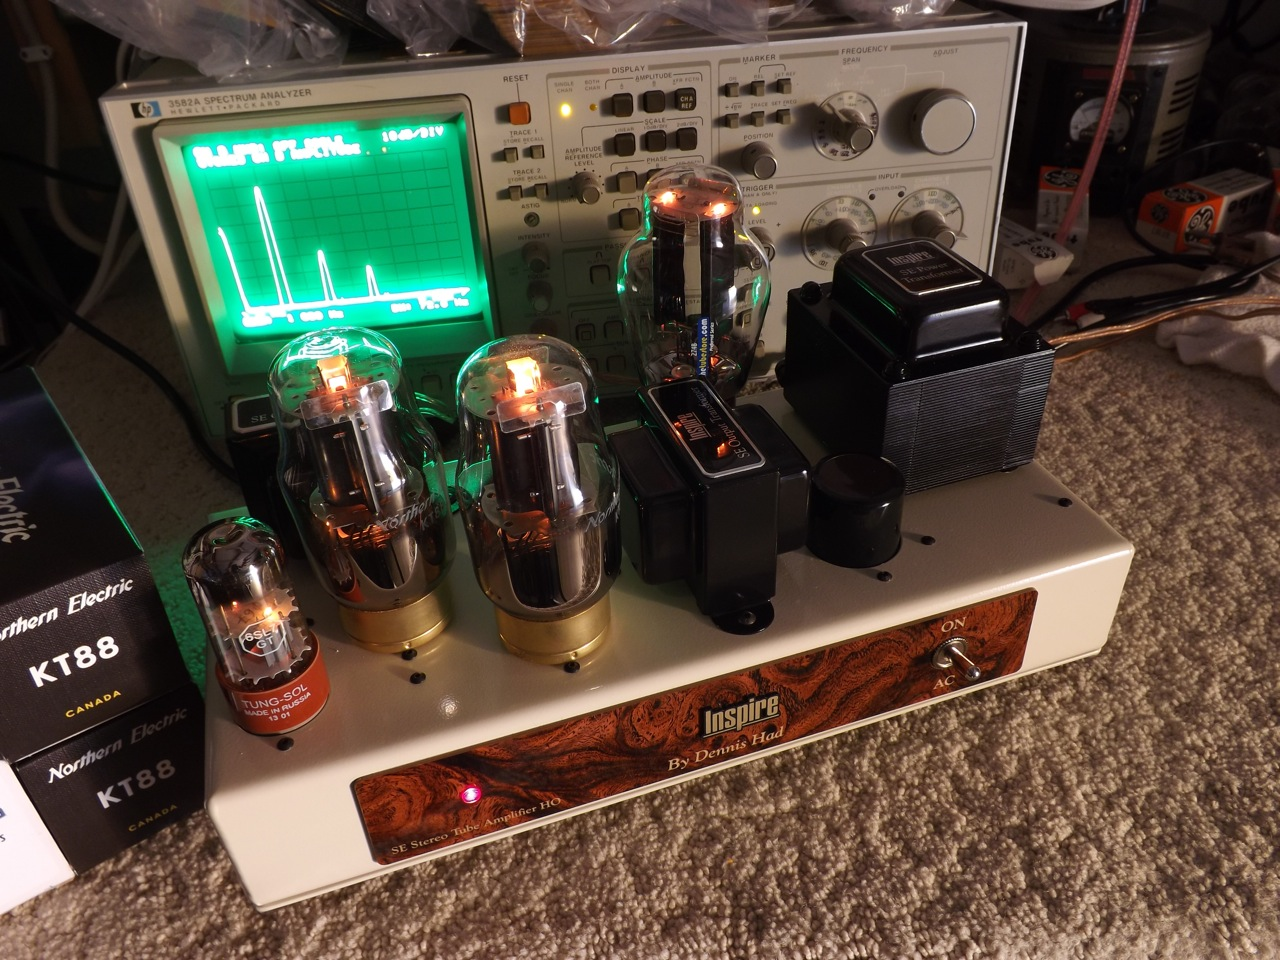 Northern Electric KT88 and Inspire SE Amp